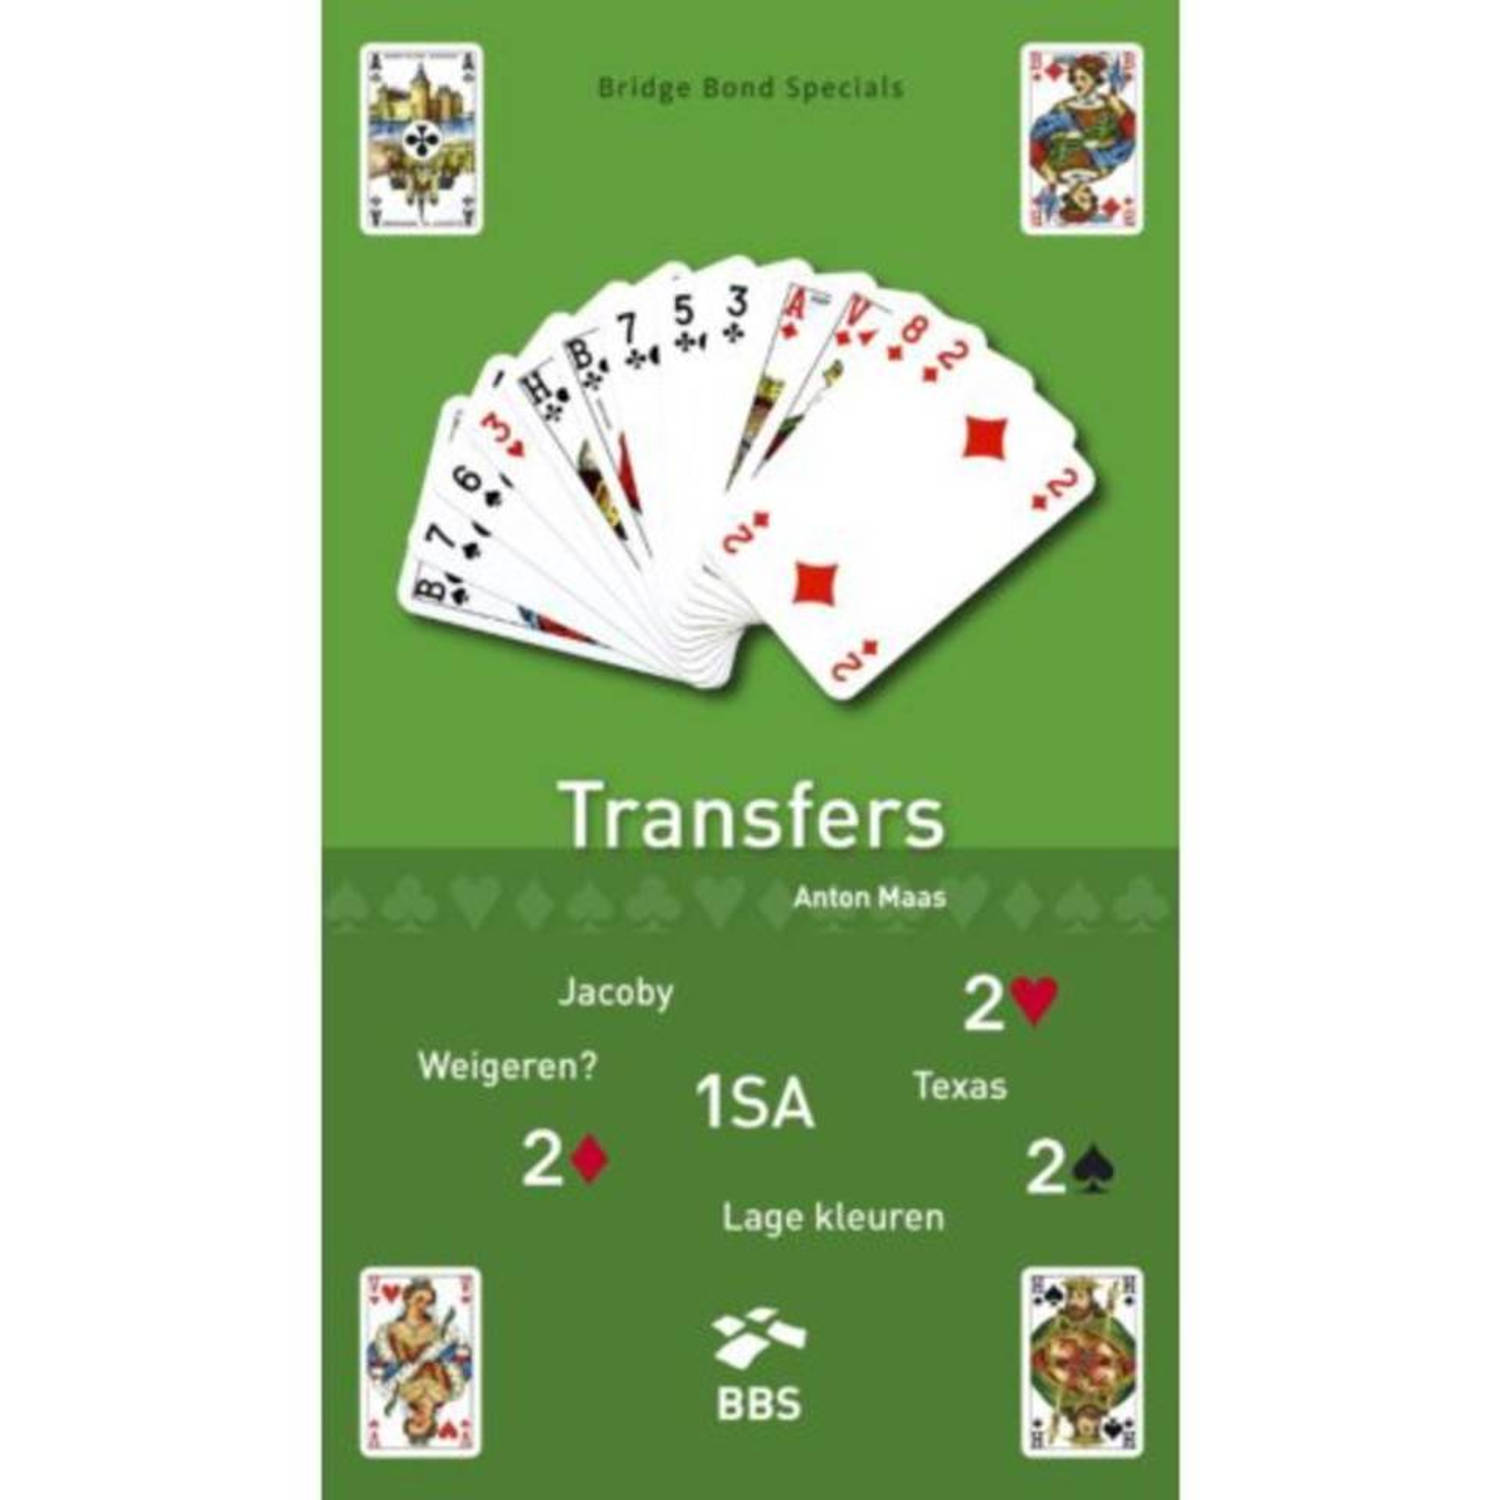 Transfers - Bridge Bond Specials